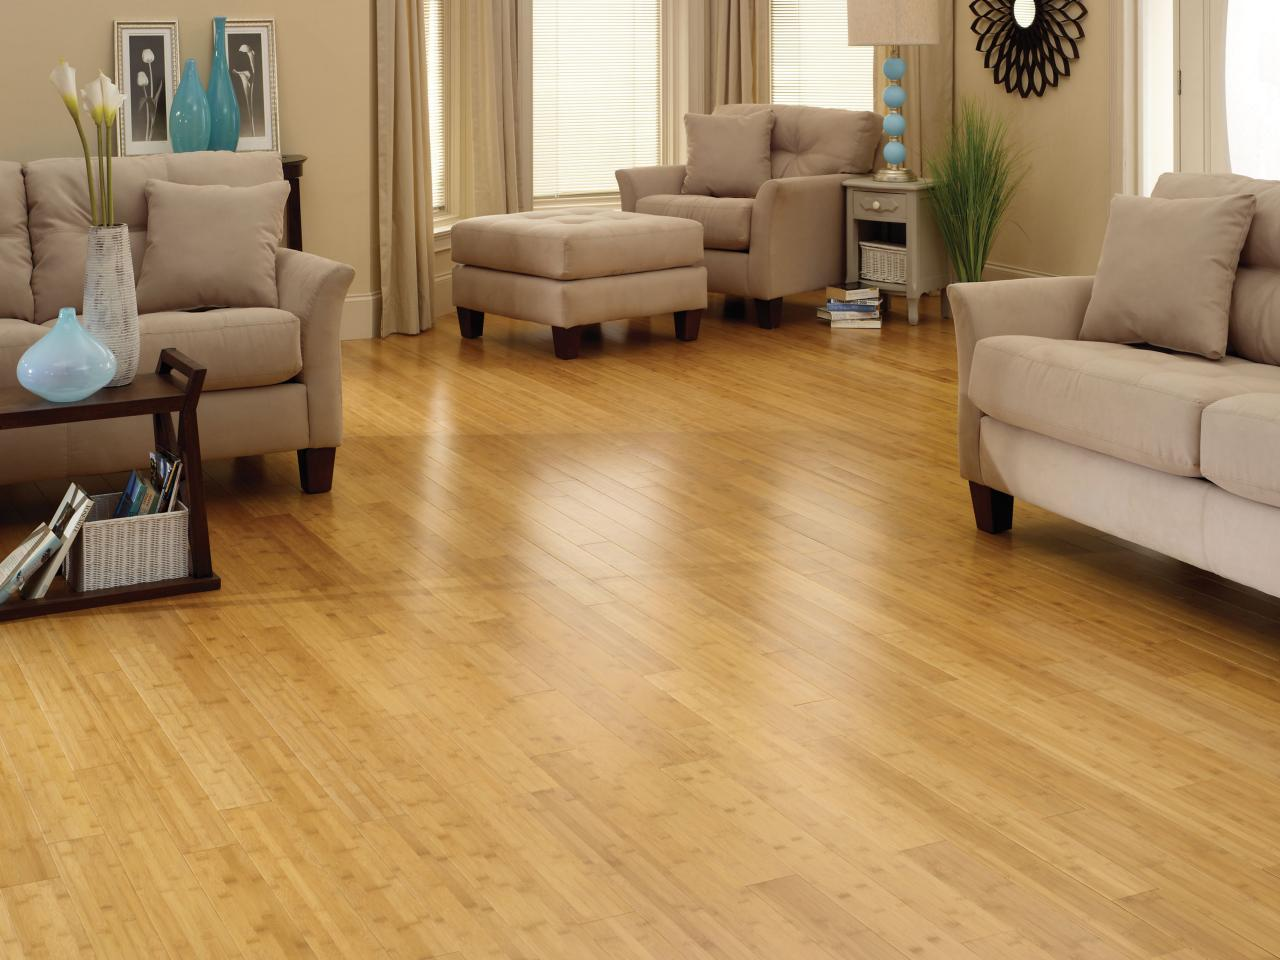 Strong and Durable Flooring in Adelaide will Help You For a Long Time